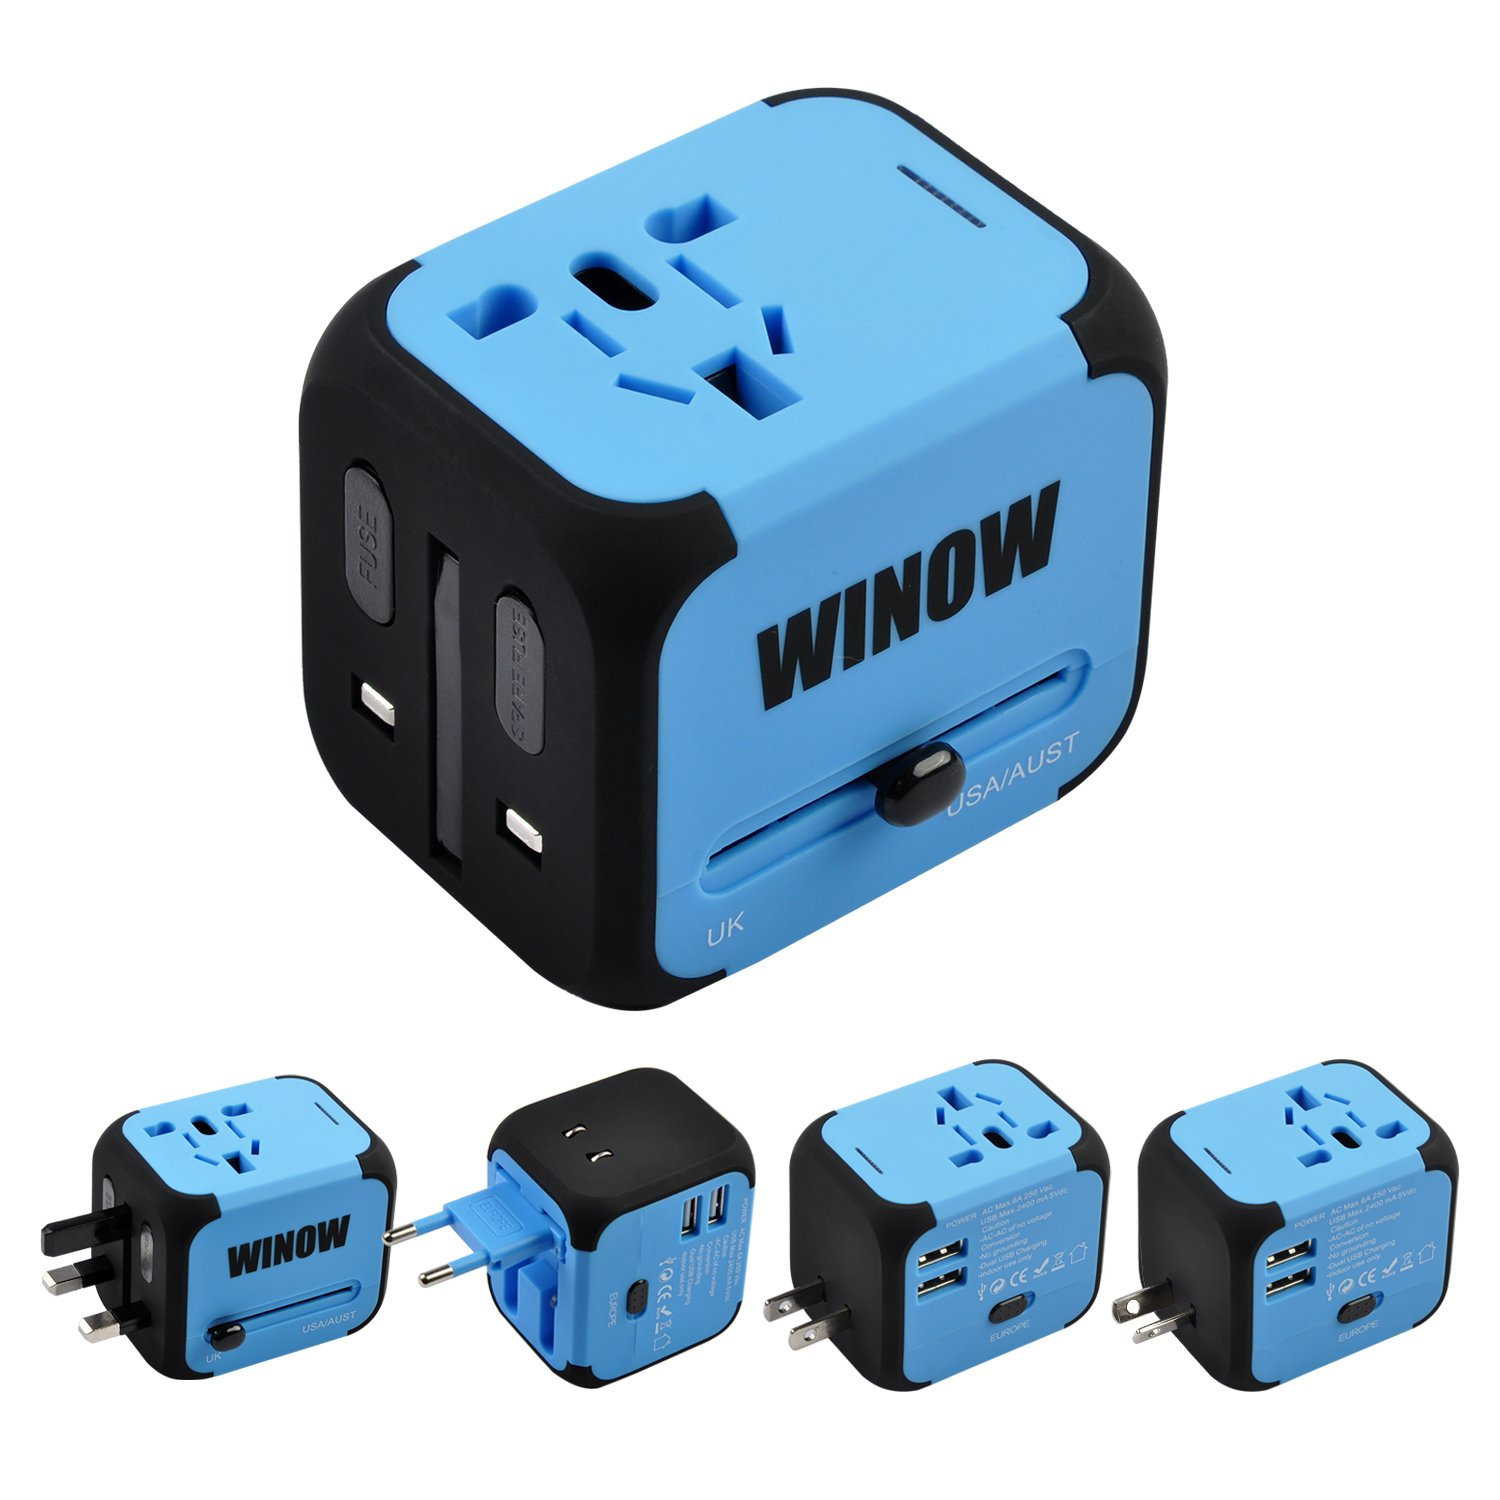 WINOW International Travel Plug Adapter, Worldwide Power AC Wall Charger with Dual USB & USA, UK, AU, EU - Great for iPhone/iPad / Laptops/Samsung / Smartphone,Spare Safty Fuse+Zipper Case (Blue)